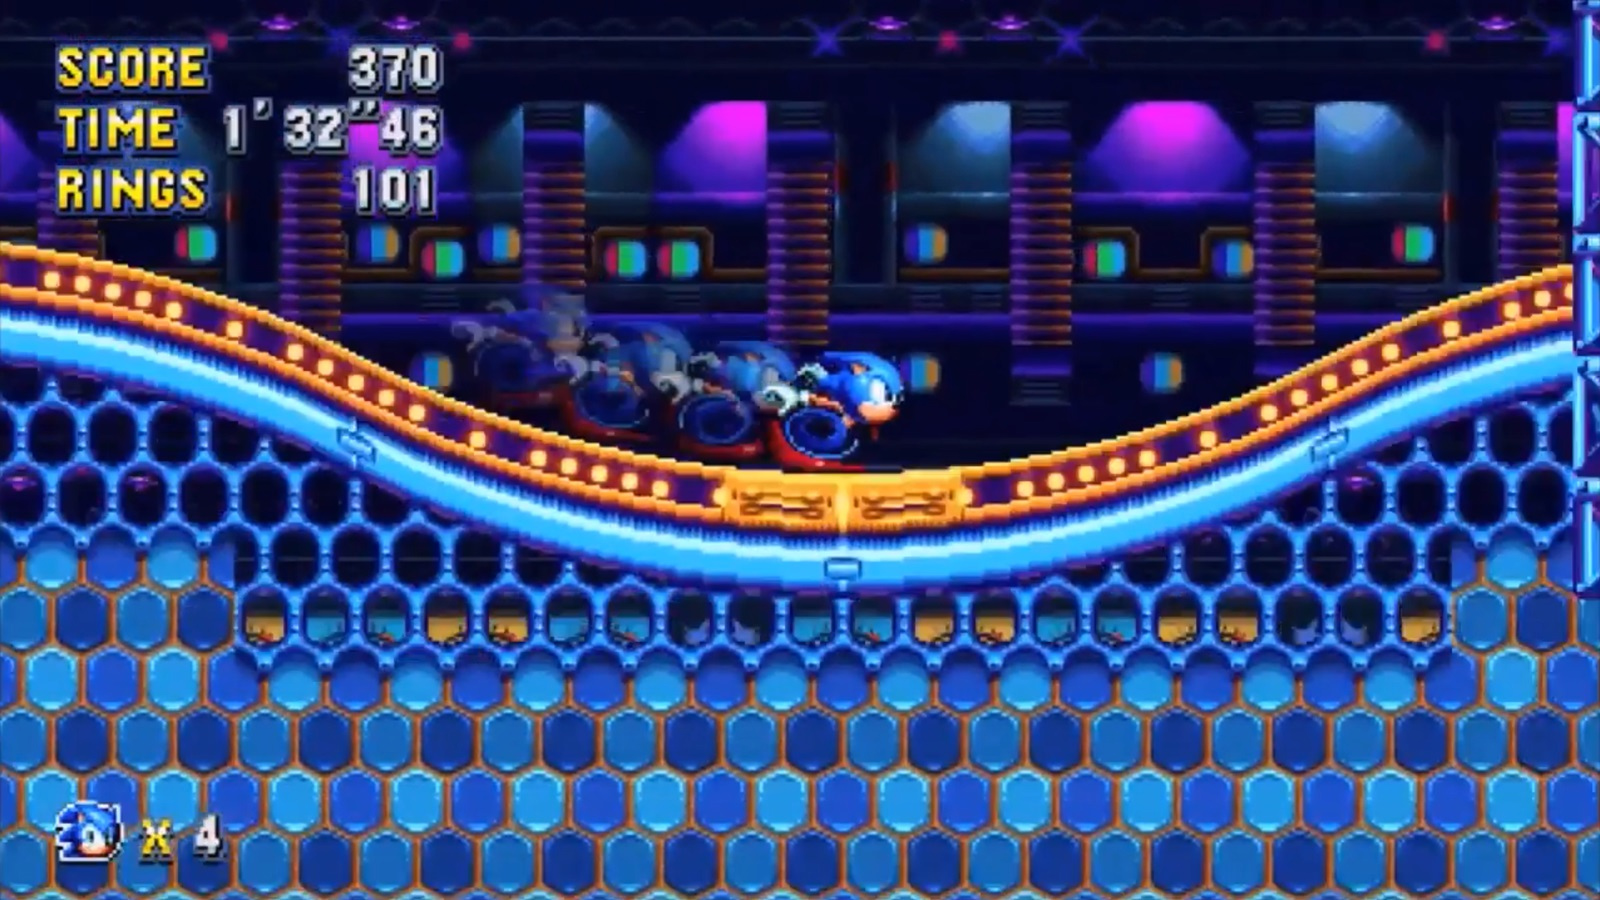 Kick off your weekend with this Sonic Mania jam